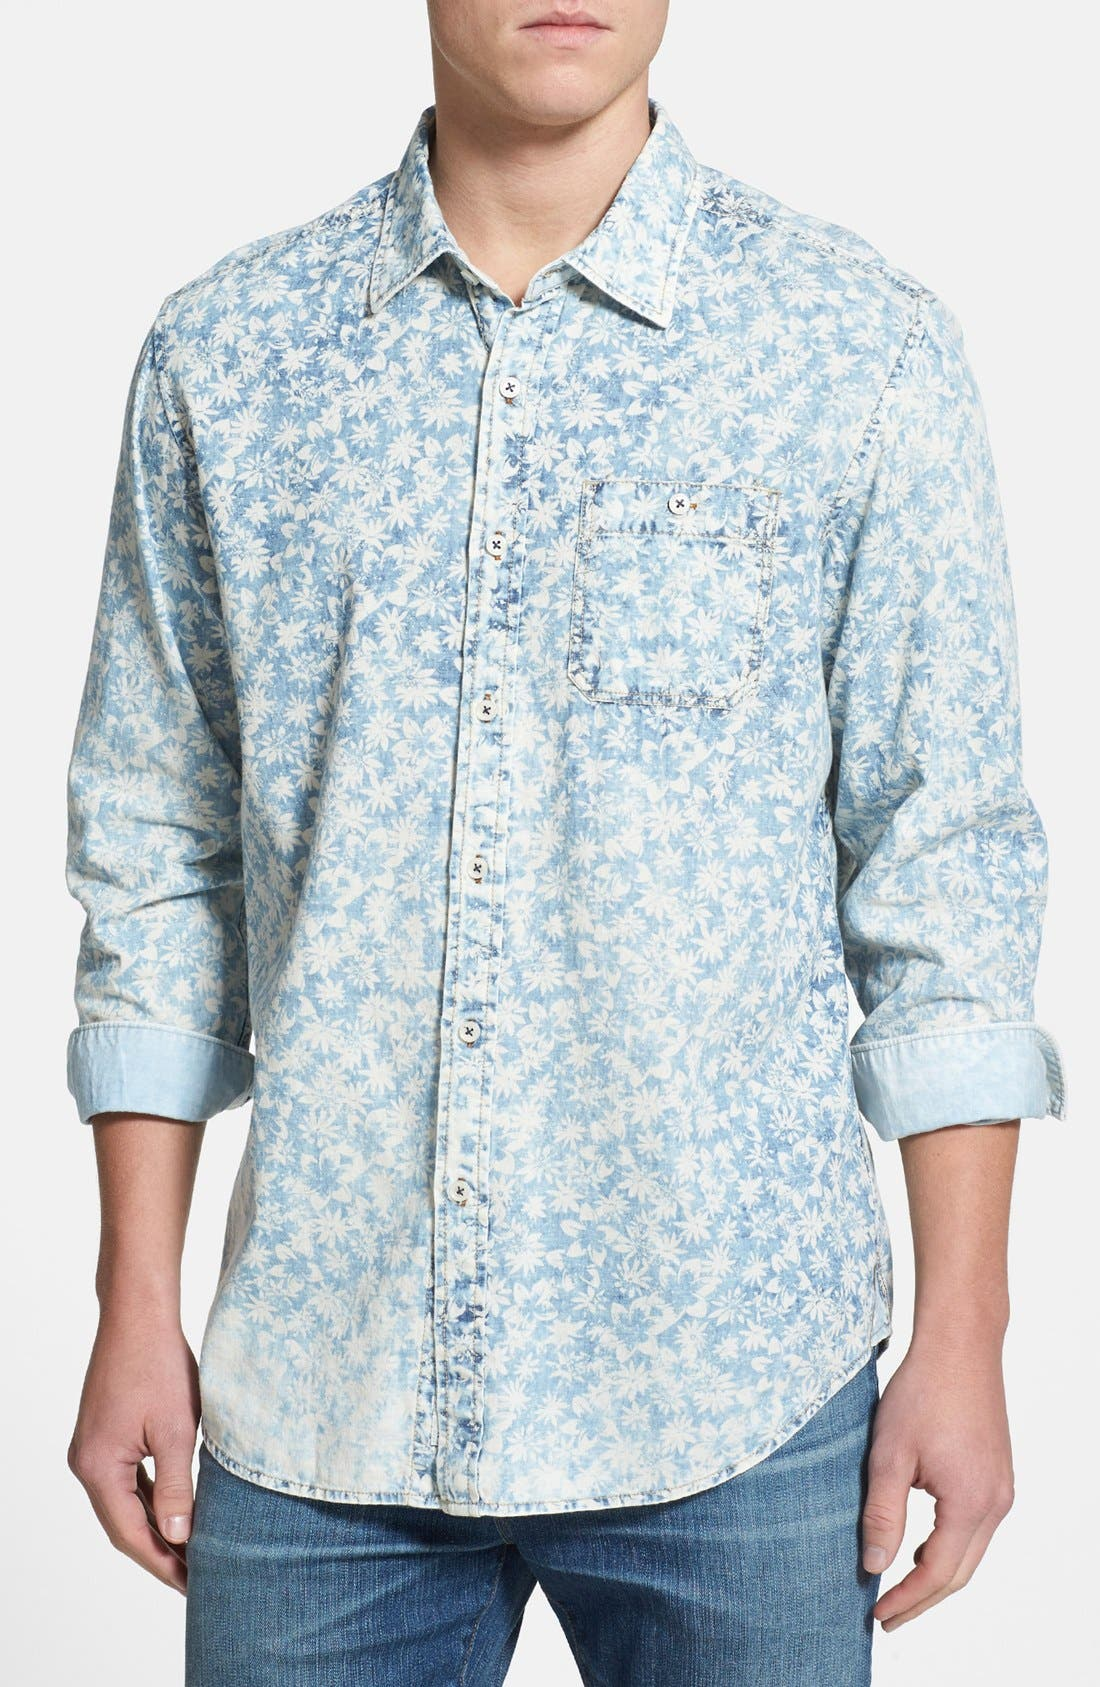 Alternate Image 1 Selected - Tommy Bahama 'Fields Forever' Island Modern Fit Sport Shirt